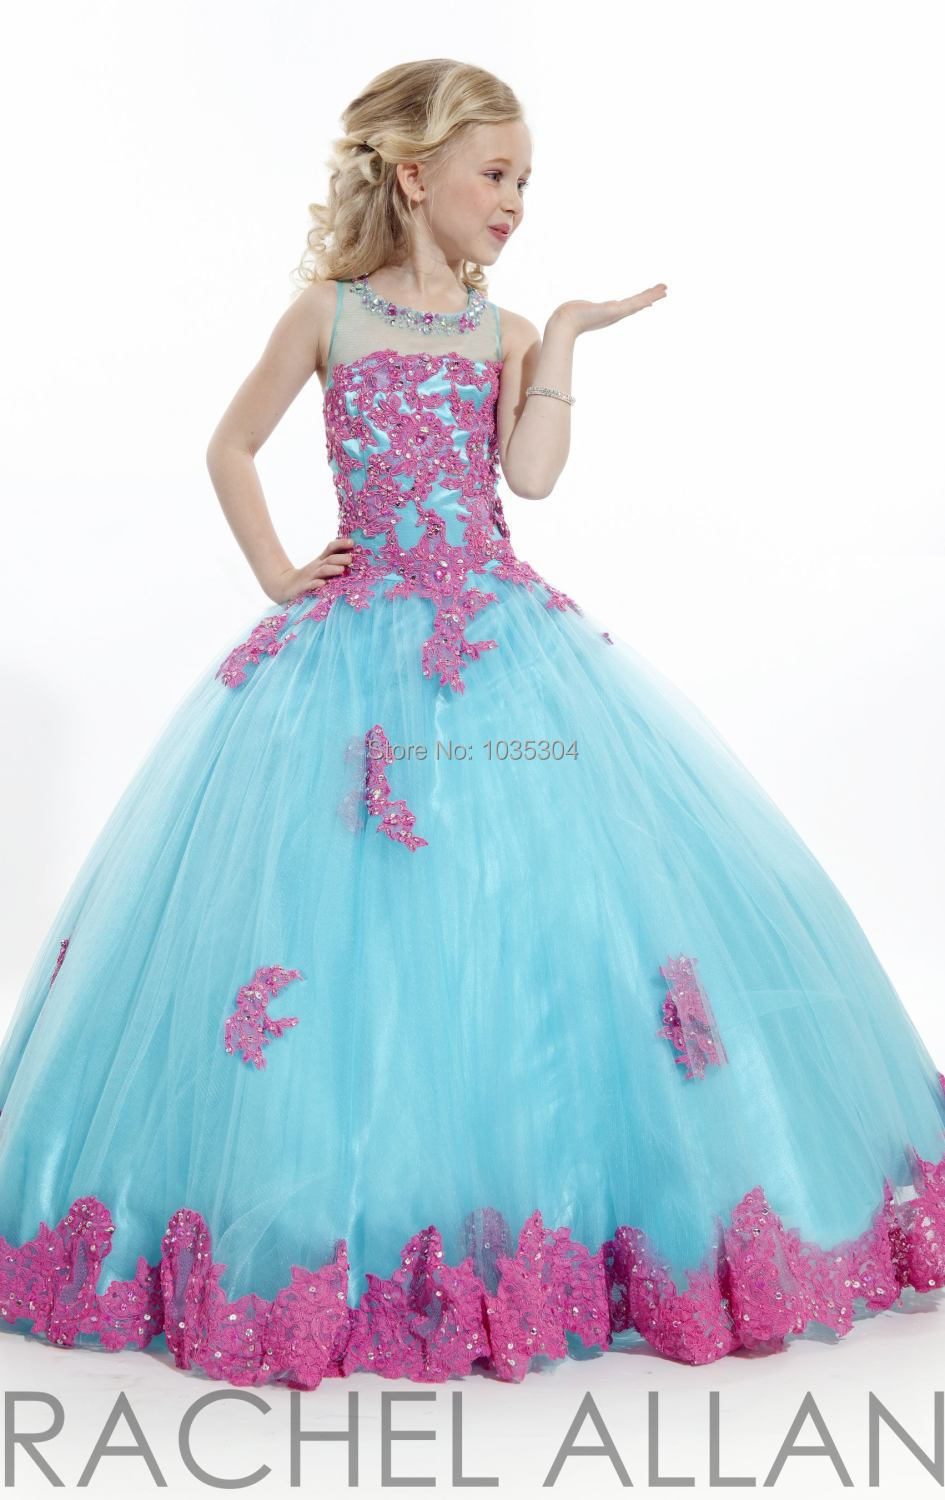 Ball gown prom dresses 2014 -  M1235 Ball Gown Scoop Applique Crystal Floor Length Girls Pageant Dresses Formal Kids Party Prom Gowns